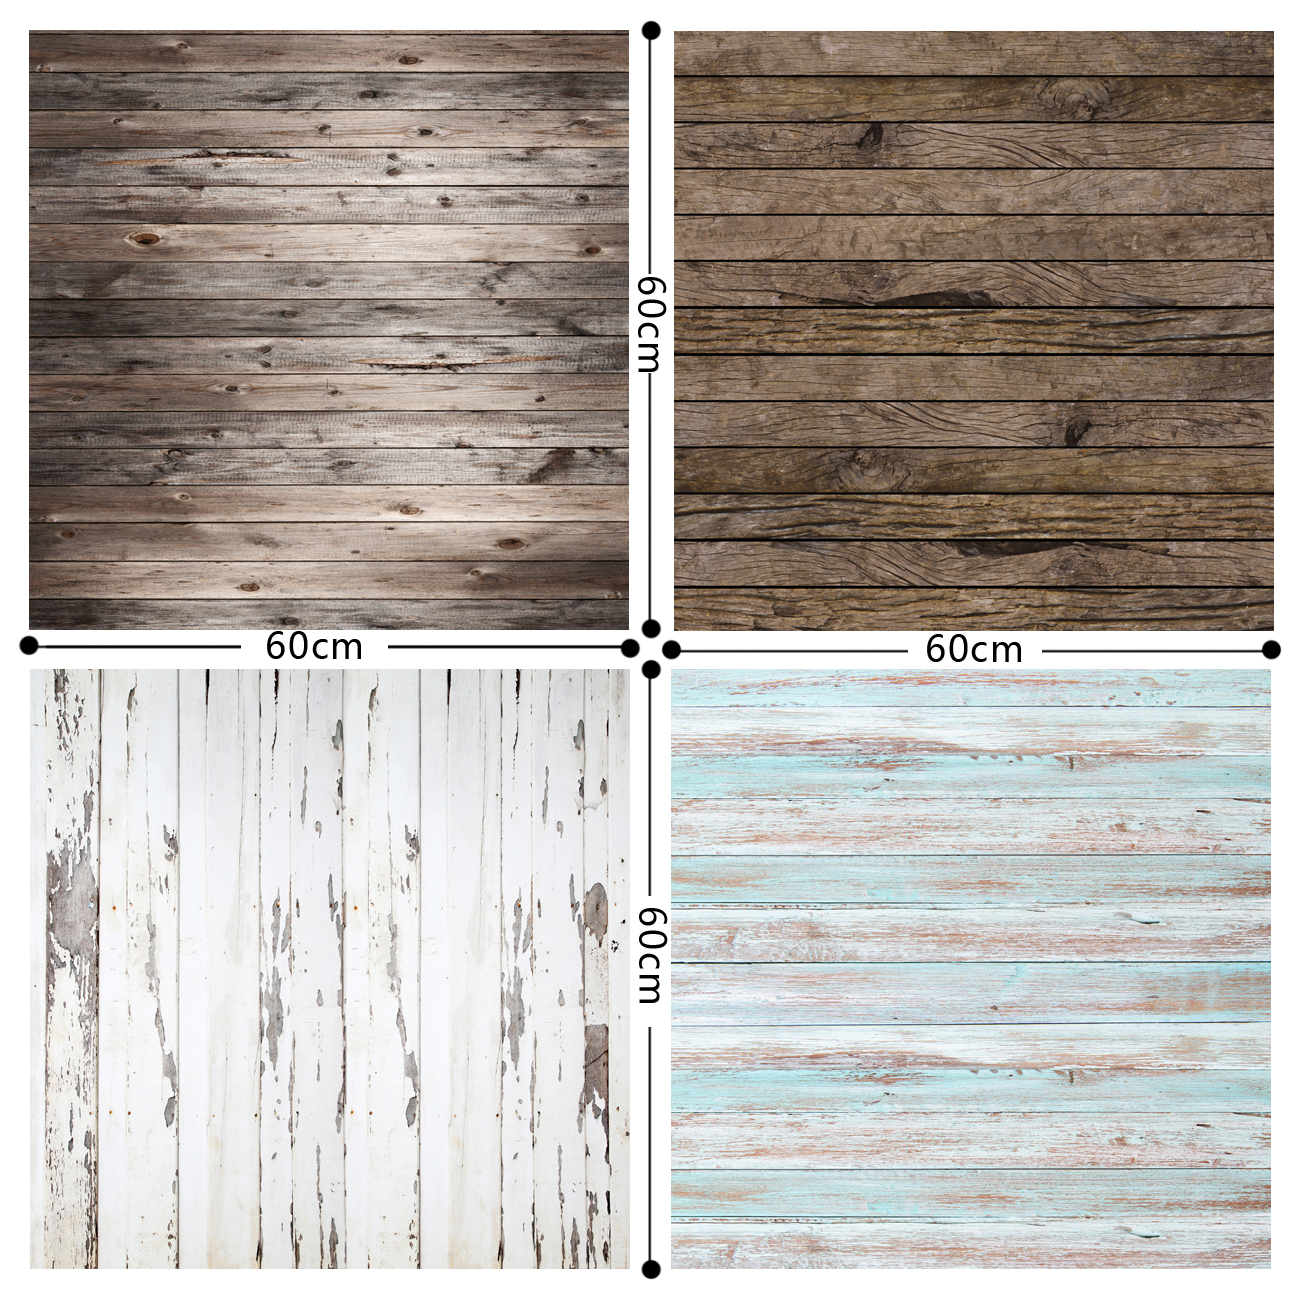 HUAYI 4pc 0.6x0.6m Wood Floor backdrop photography backdrops wood vinyl Backdrop GY-009 huayi 4pc 2x2ft wood floor brick wall backdrop vinyl photography backdrops photo props background small object shooting gy 019